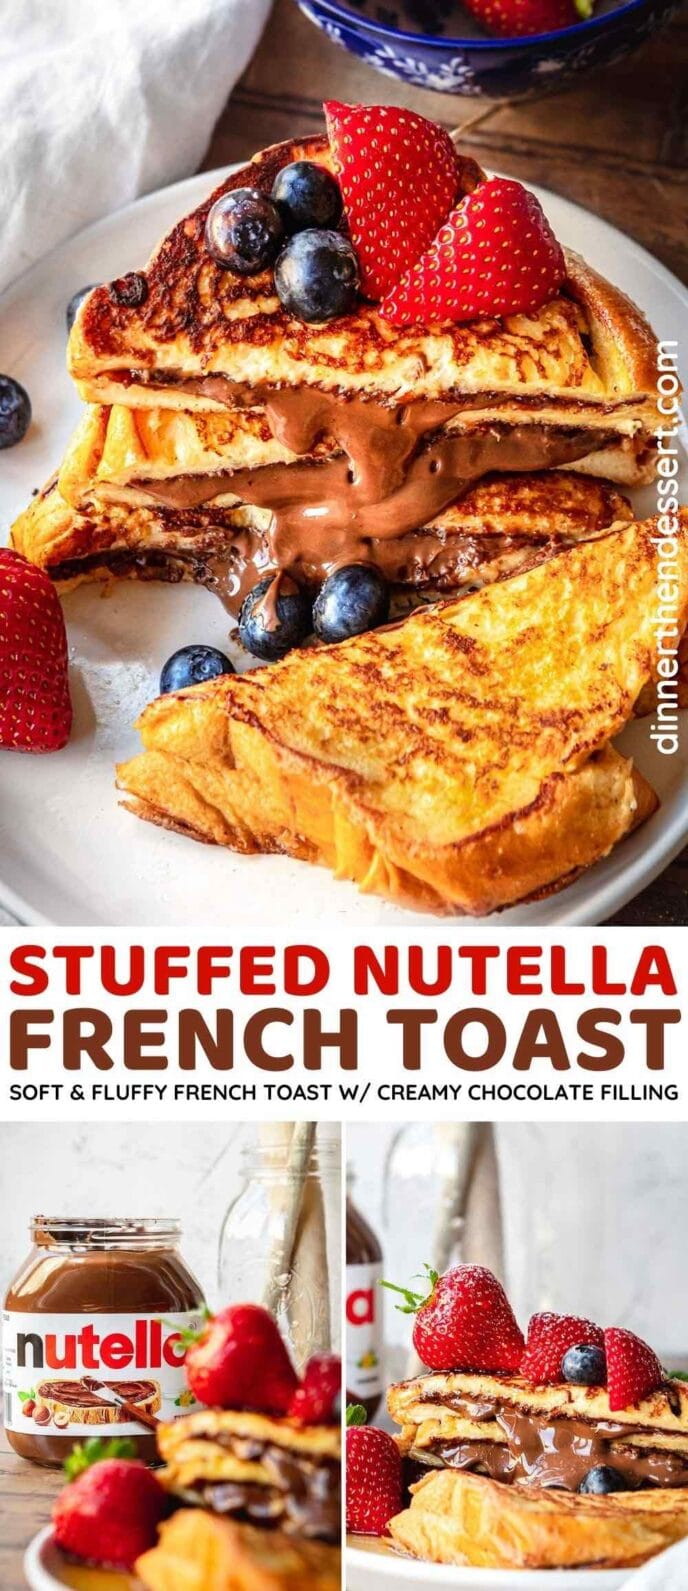 Stuffed Nutella French Toast collage